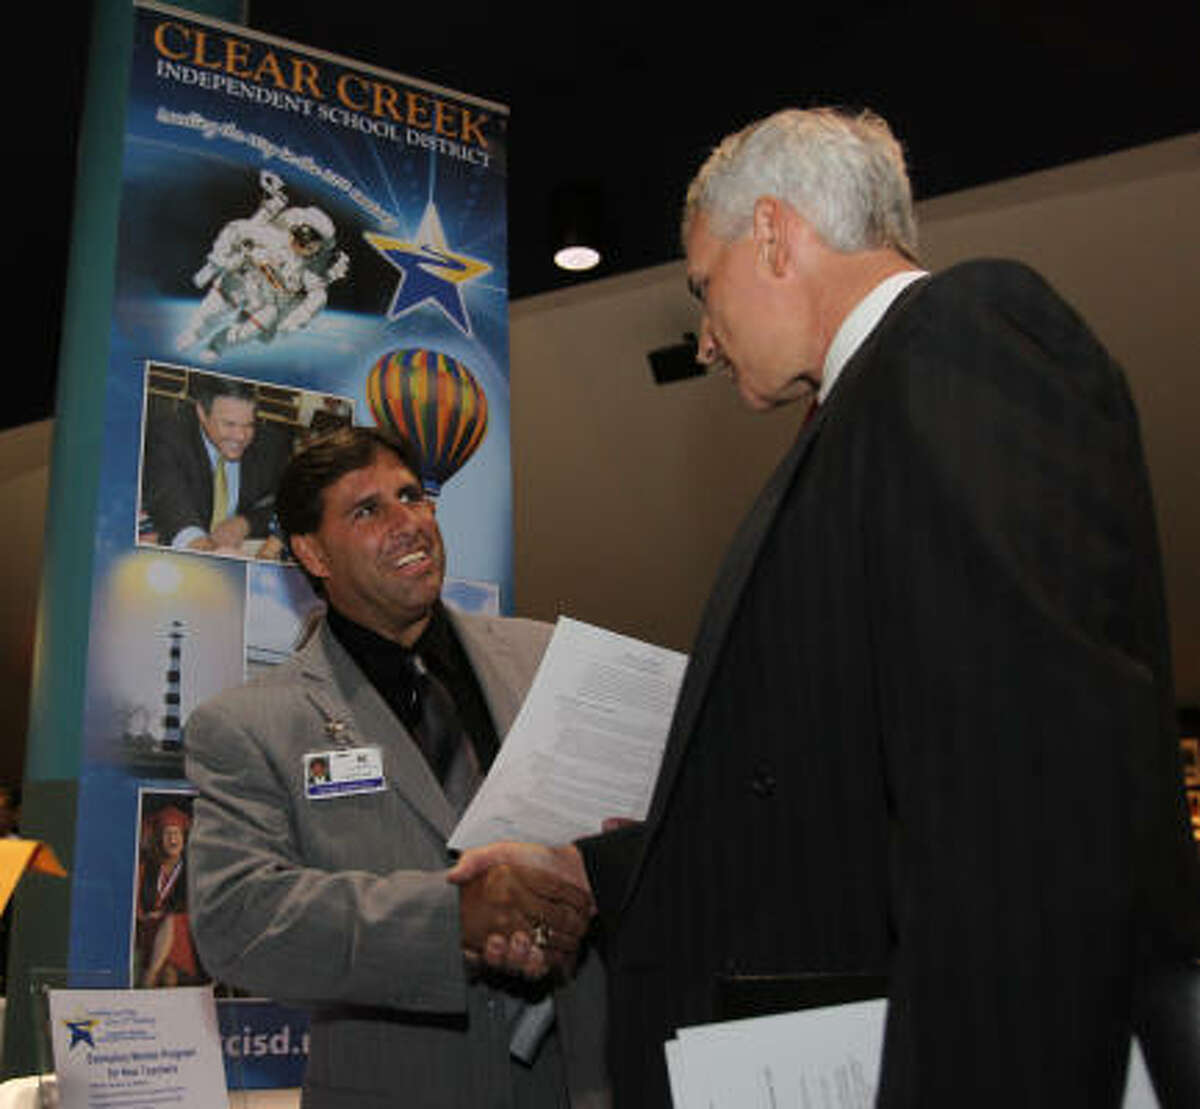 Lonnie Leal with Clear Creek Independent School District talks with former NASA contractor Tom Underkircher during a Recruiting Expo held by Workforce Solutions and NASA/Johnson Space Center at Space Center Houston on Tuesday.